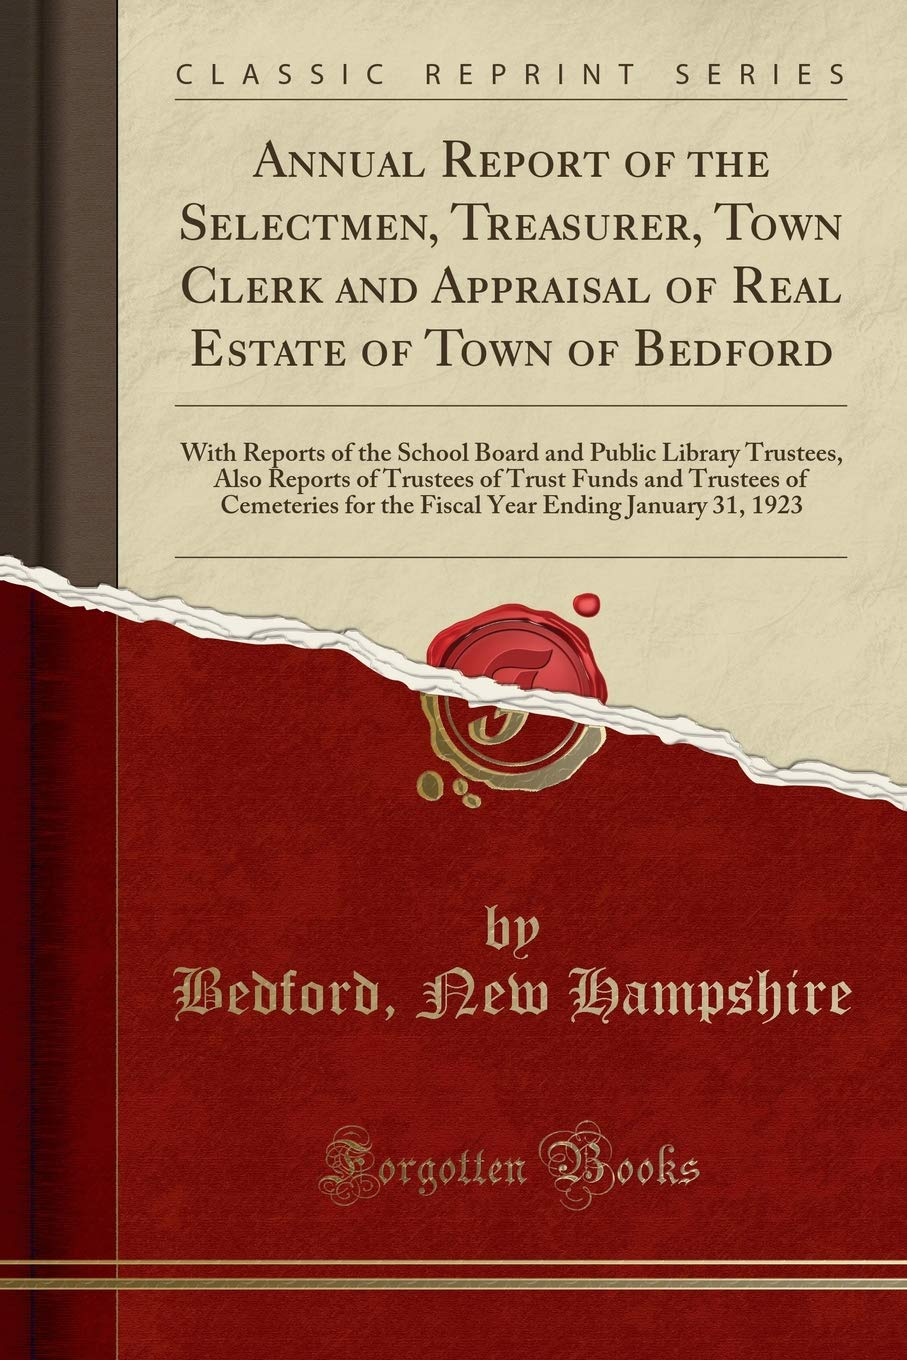 Annual Report of the Selectmen, Treasurer, Town Clerk and Appraisal of Real Estate of Town of Bedford: With Reports of the School Board and Public ... of Cemeteries for the Fiscal Year End ebook